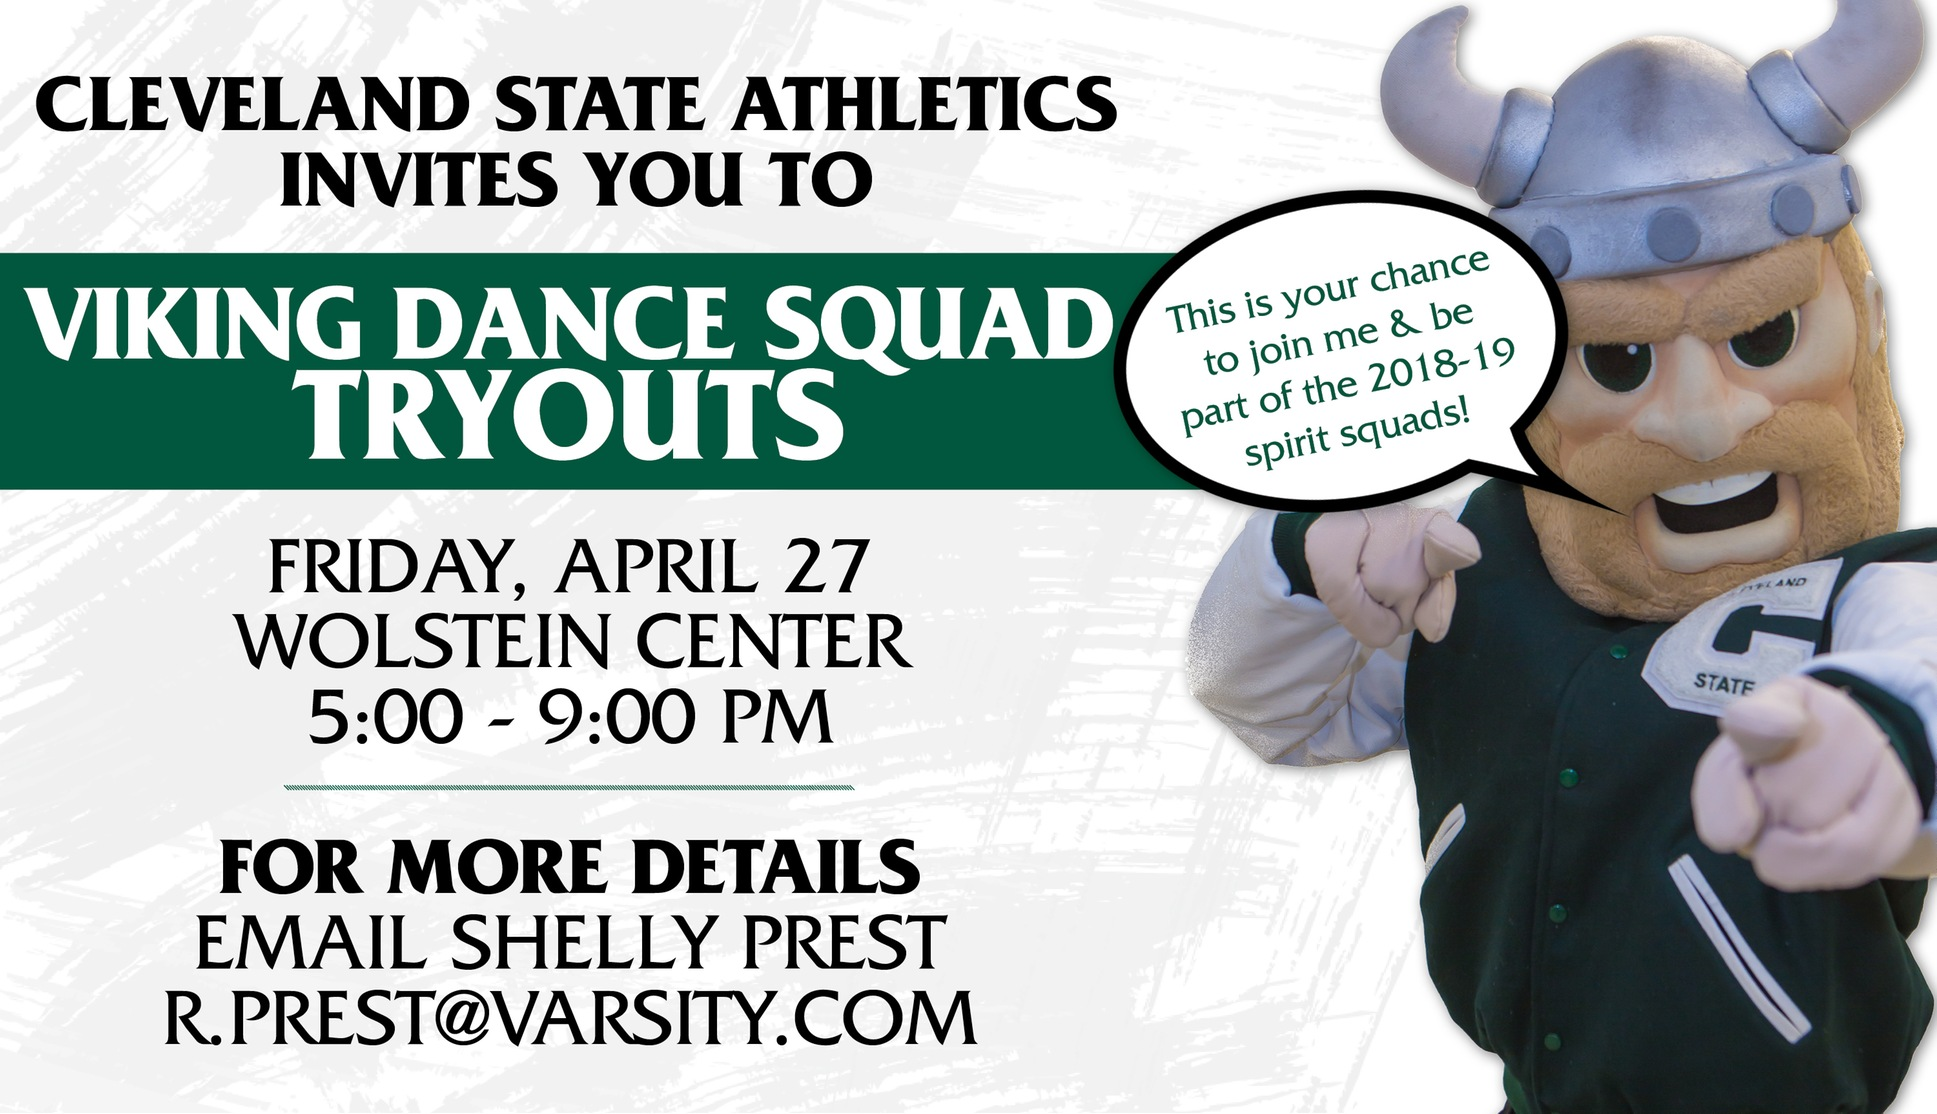 Cleveland State to Hold Viking Dance Squad Tryouts April 27